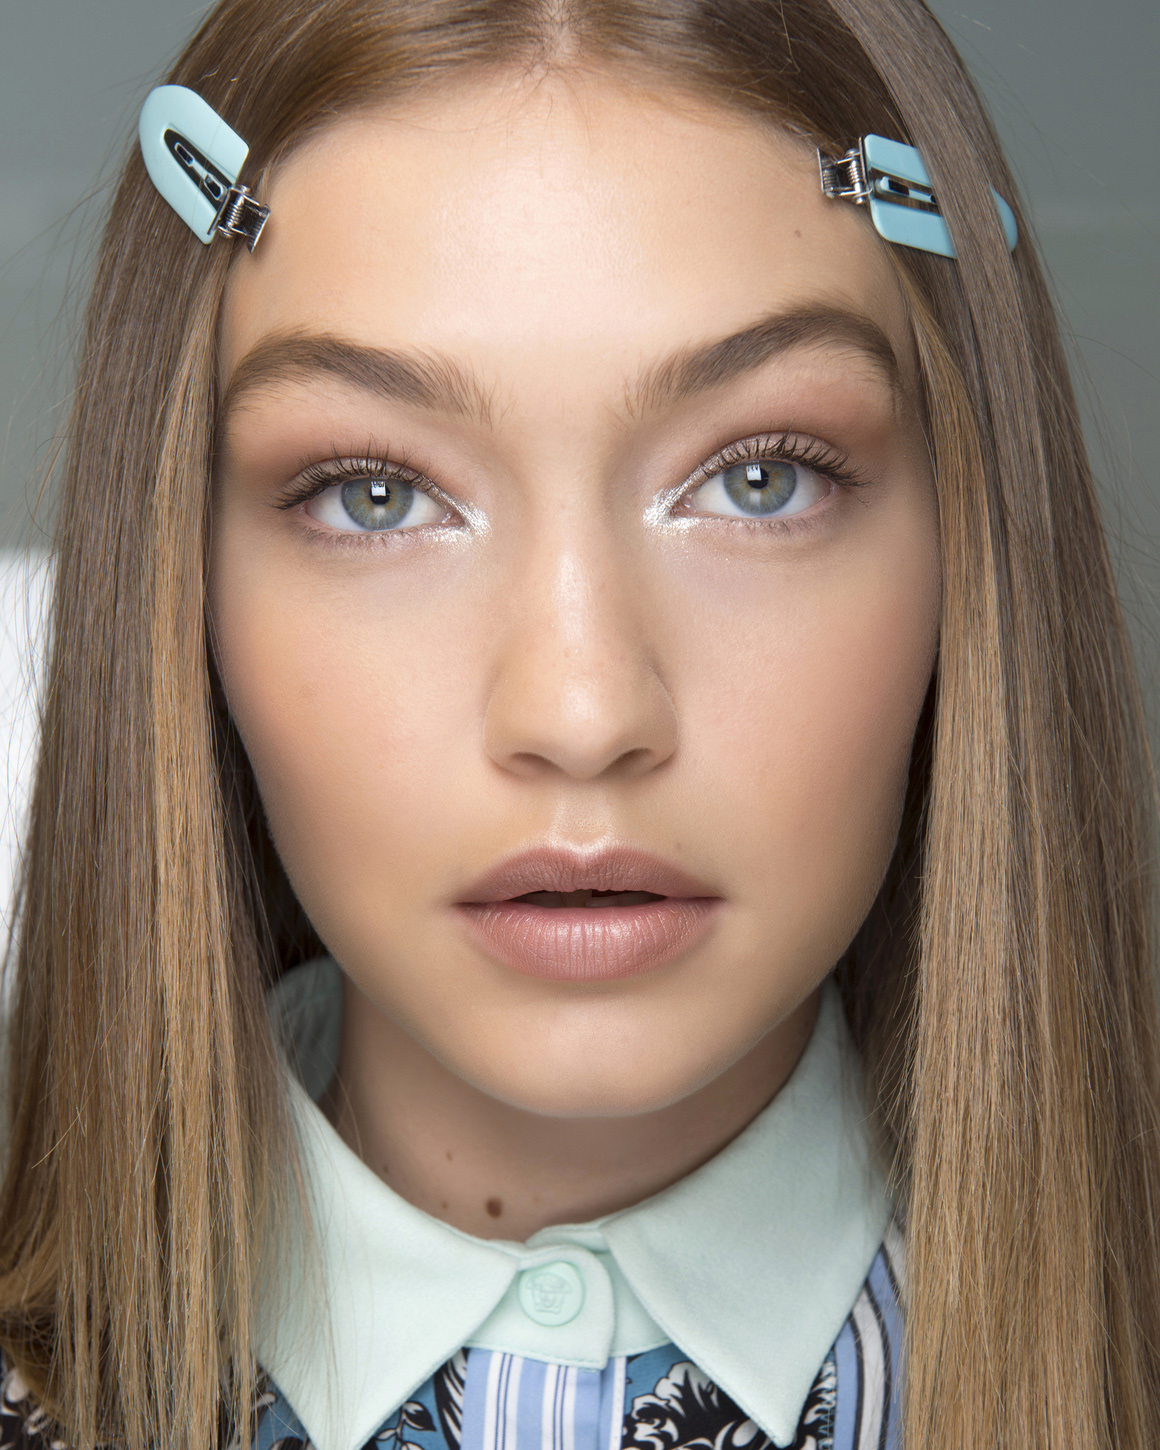 Doing Your Own Wedding Makeup: Best Wedding Make-Up Looks For The Big Day